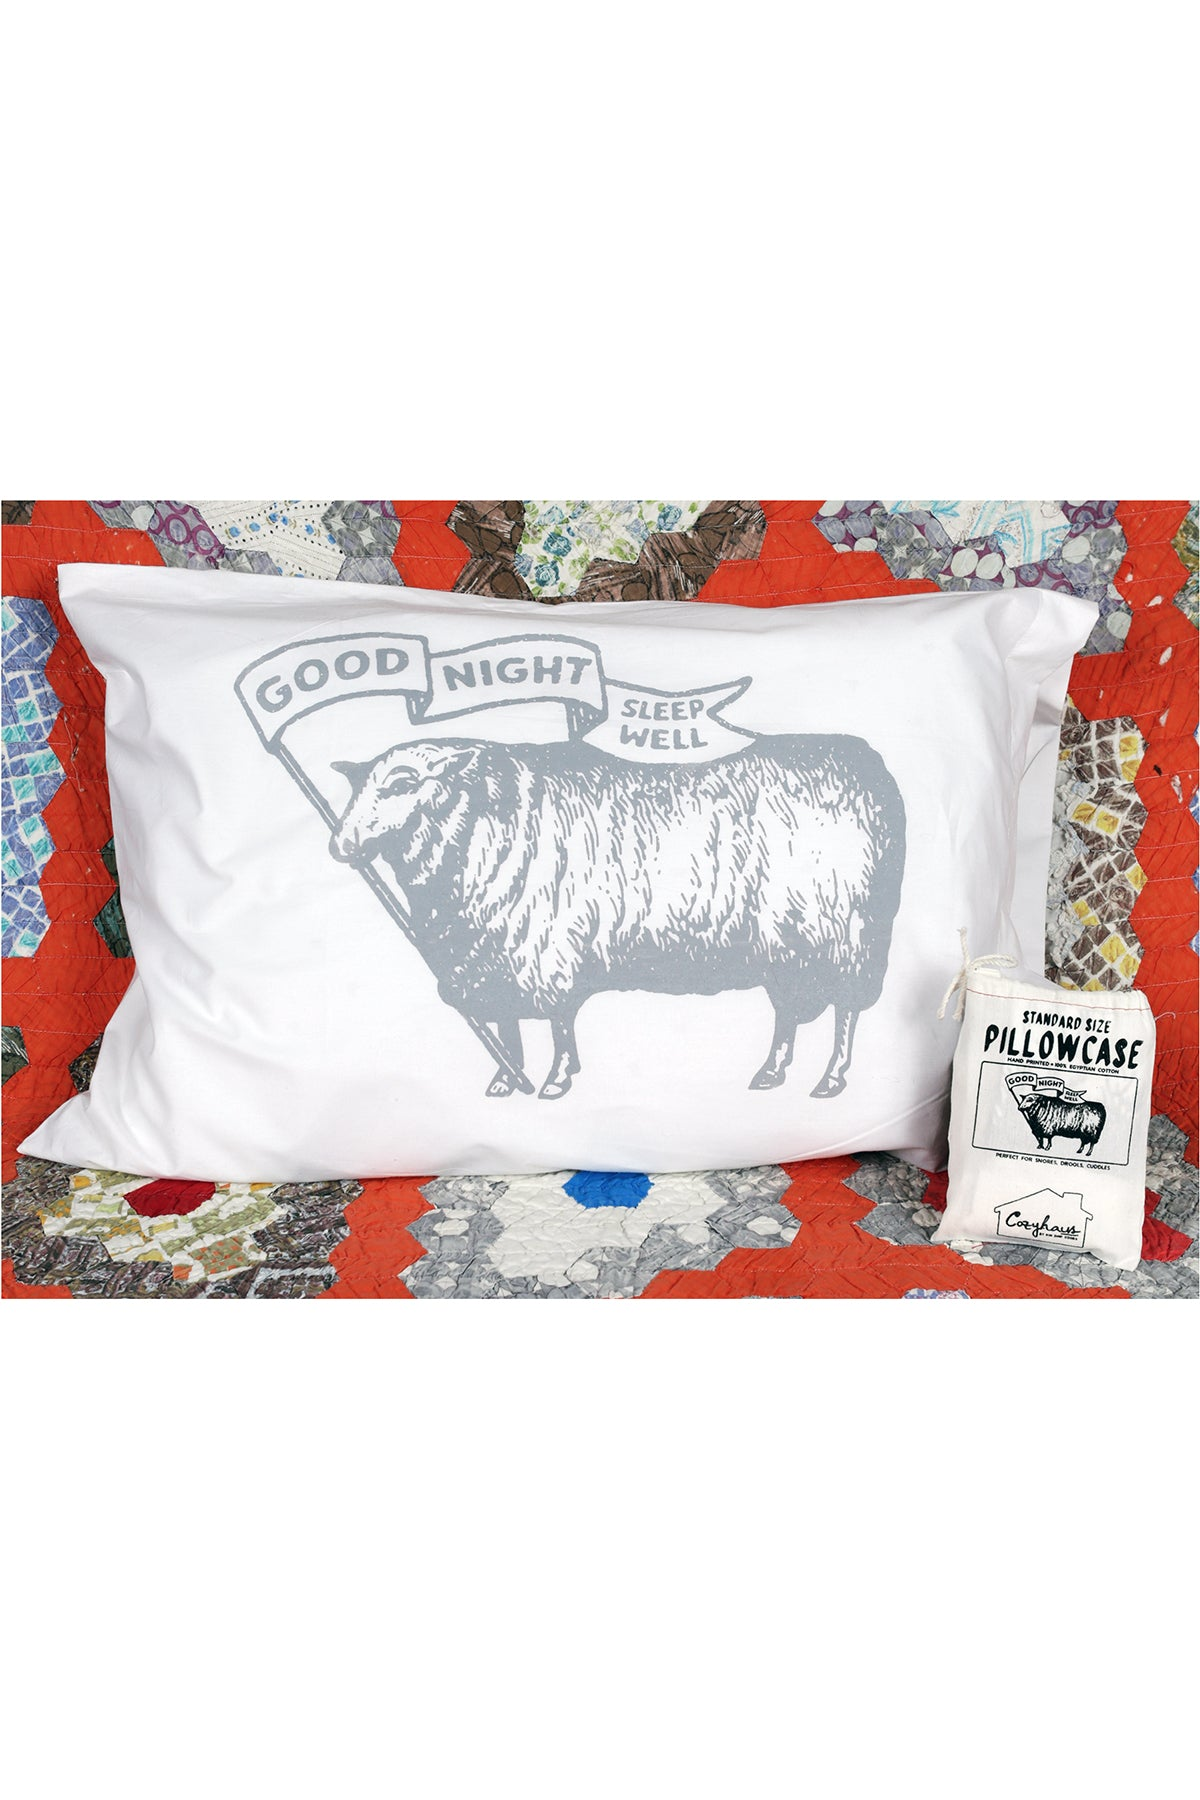 sleep well sheep pillowcase